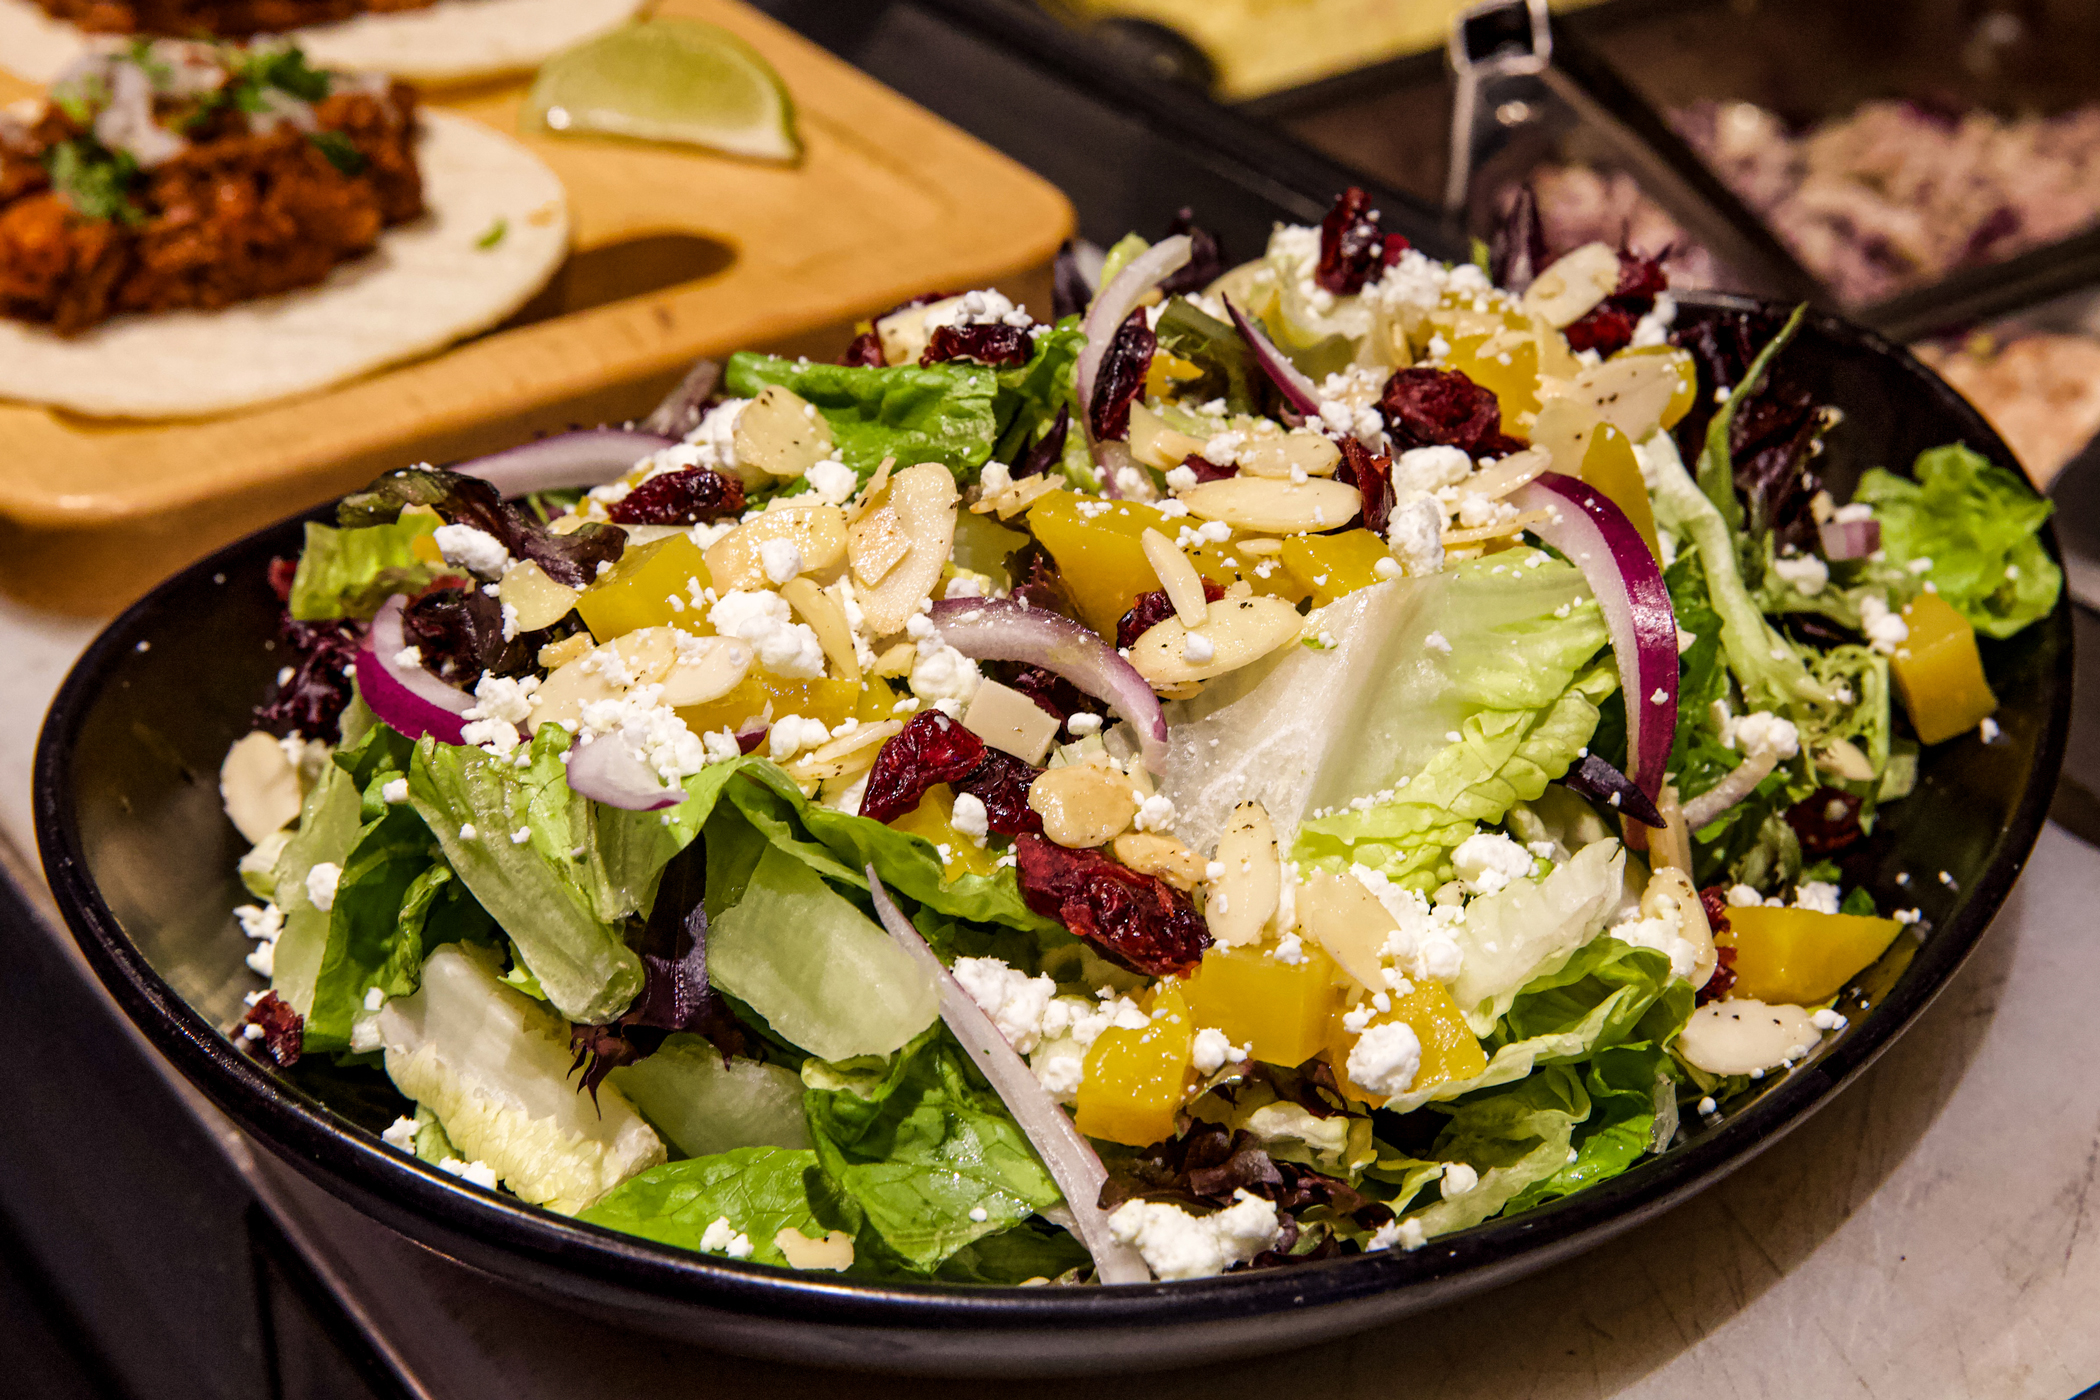 Smokehouse salad